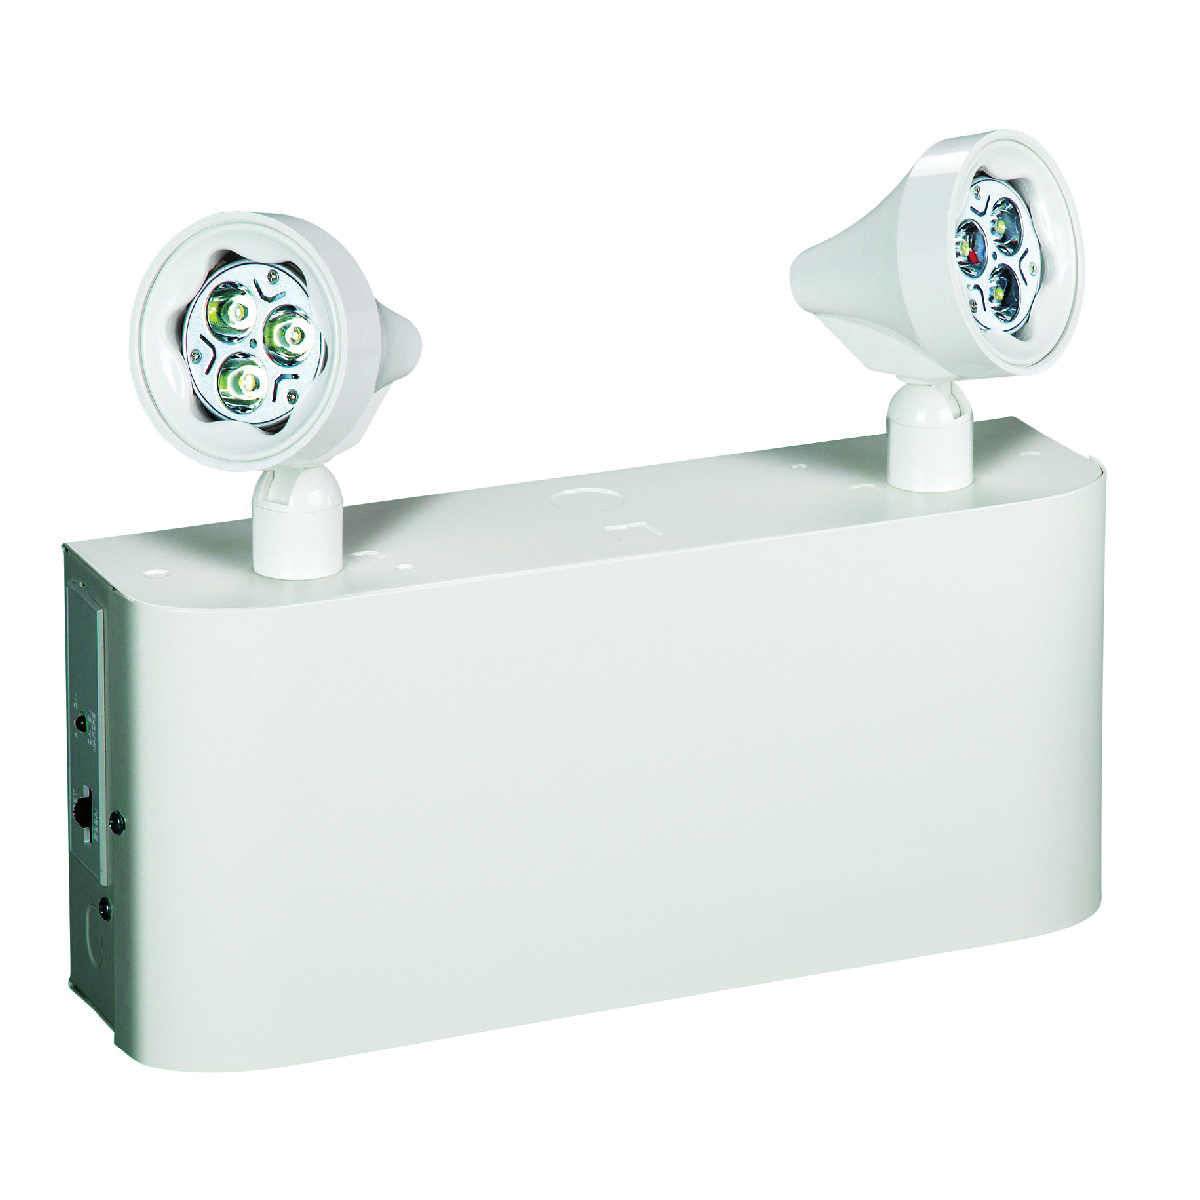 Emergi Lite Jsm54 2 Ceiling Wall Universal J Box Mount